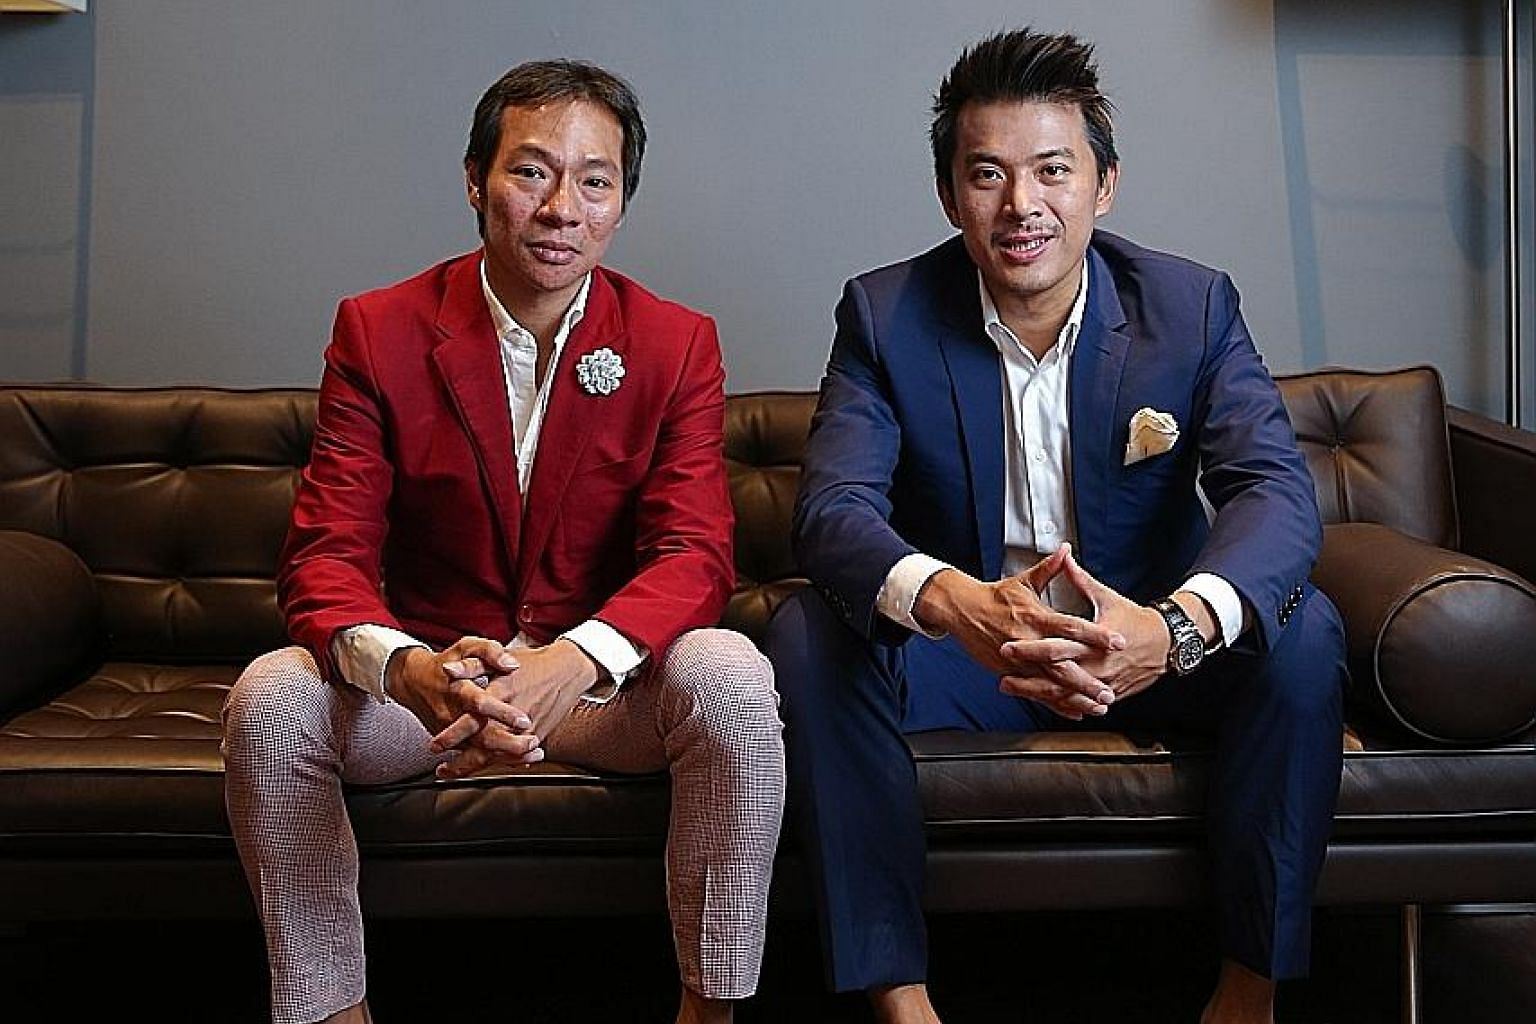 Mr Terence Loh (left) said through his lawyer that he was aware of the police report, while his cousin Nelson Loh could not be reached. ST FILE PHOTO